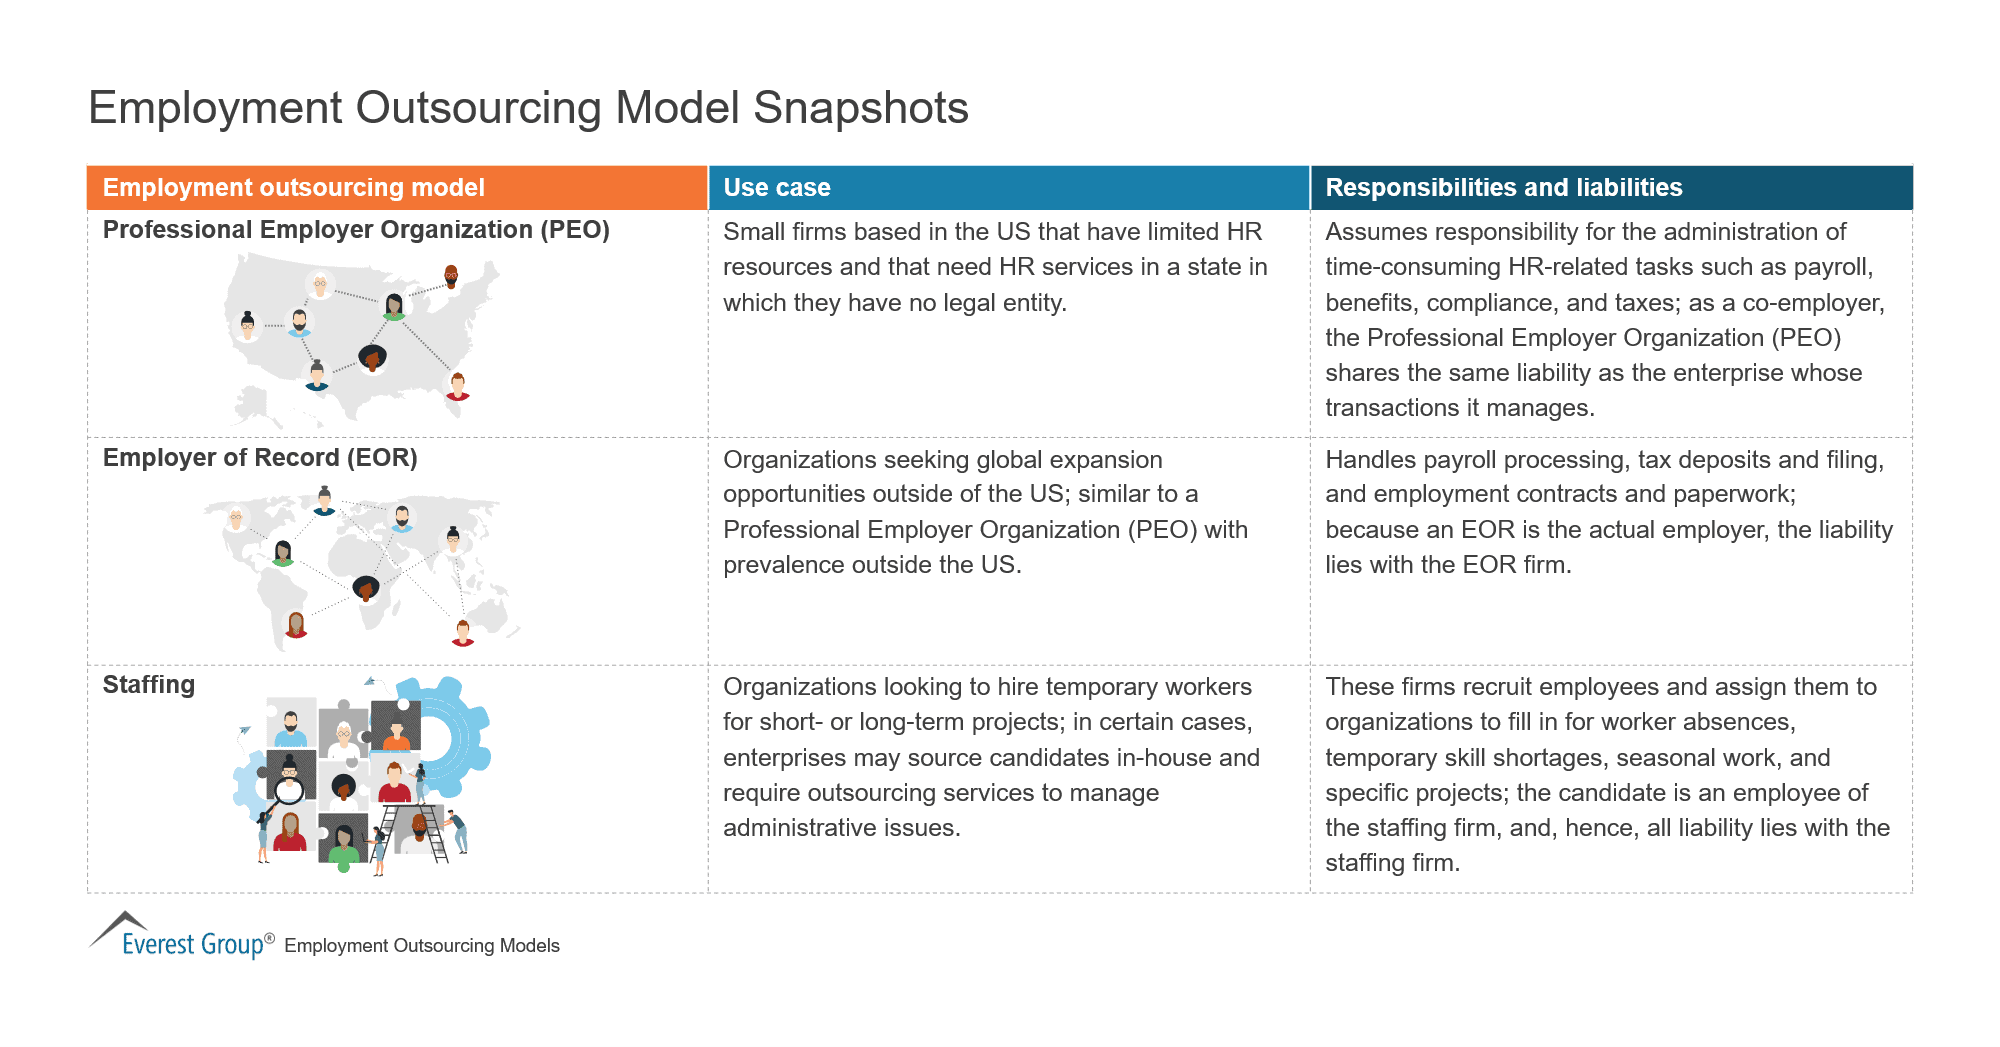 Employment Outsourcing Model Snapshots